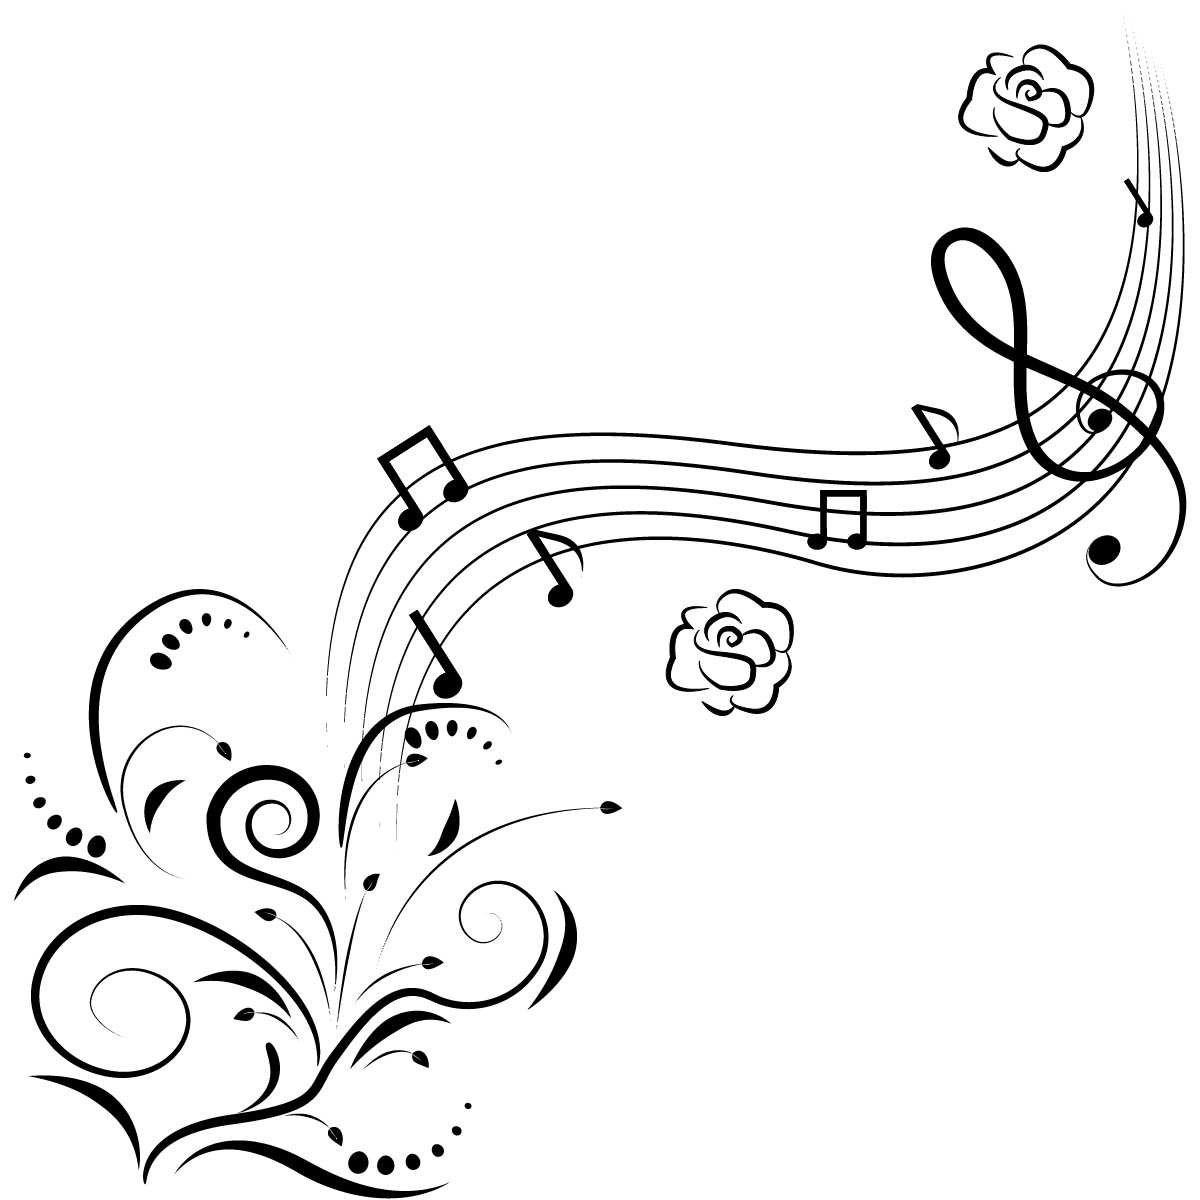 The Best Free Music Drawing Images Download From